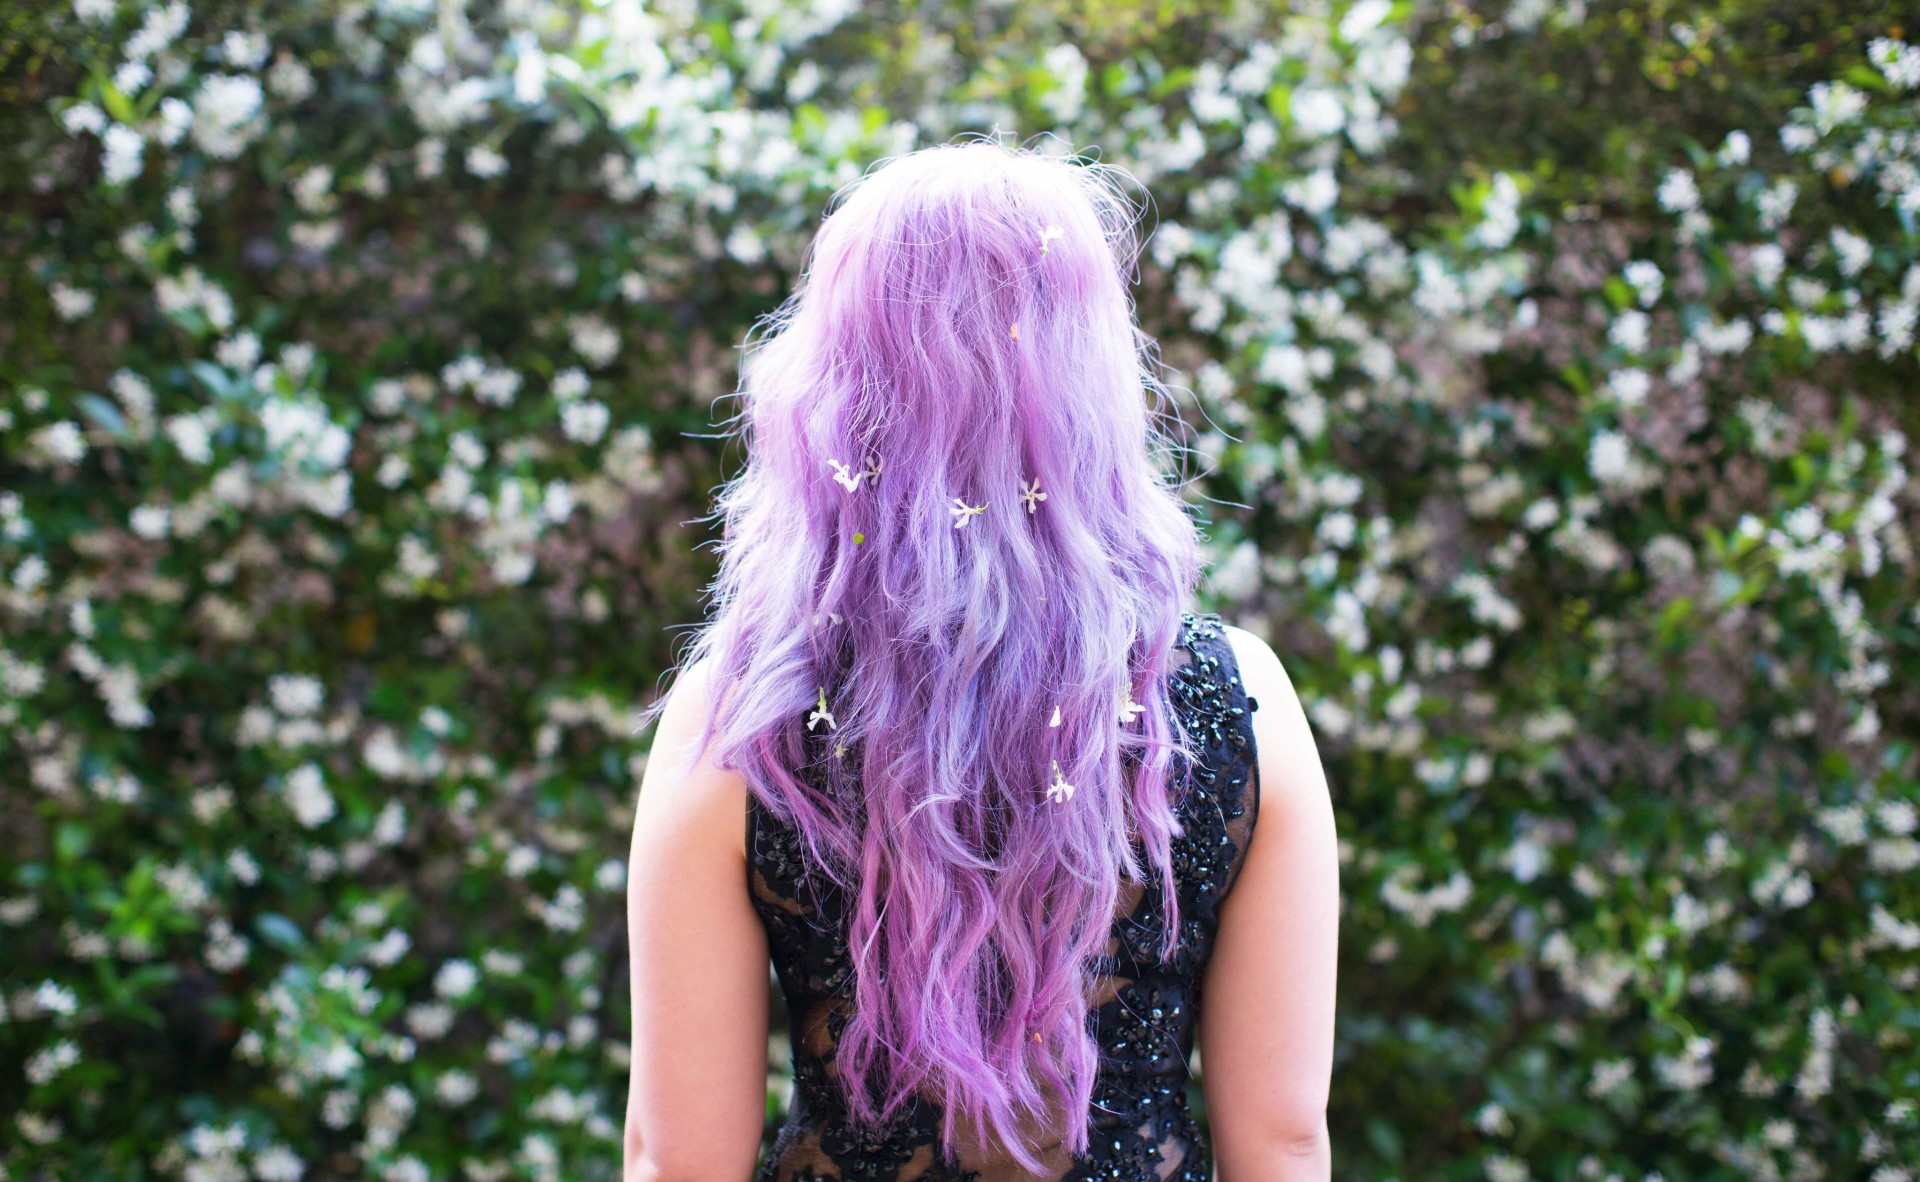 Pastel hair: my love hate relationship